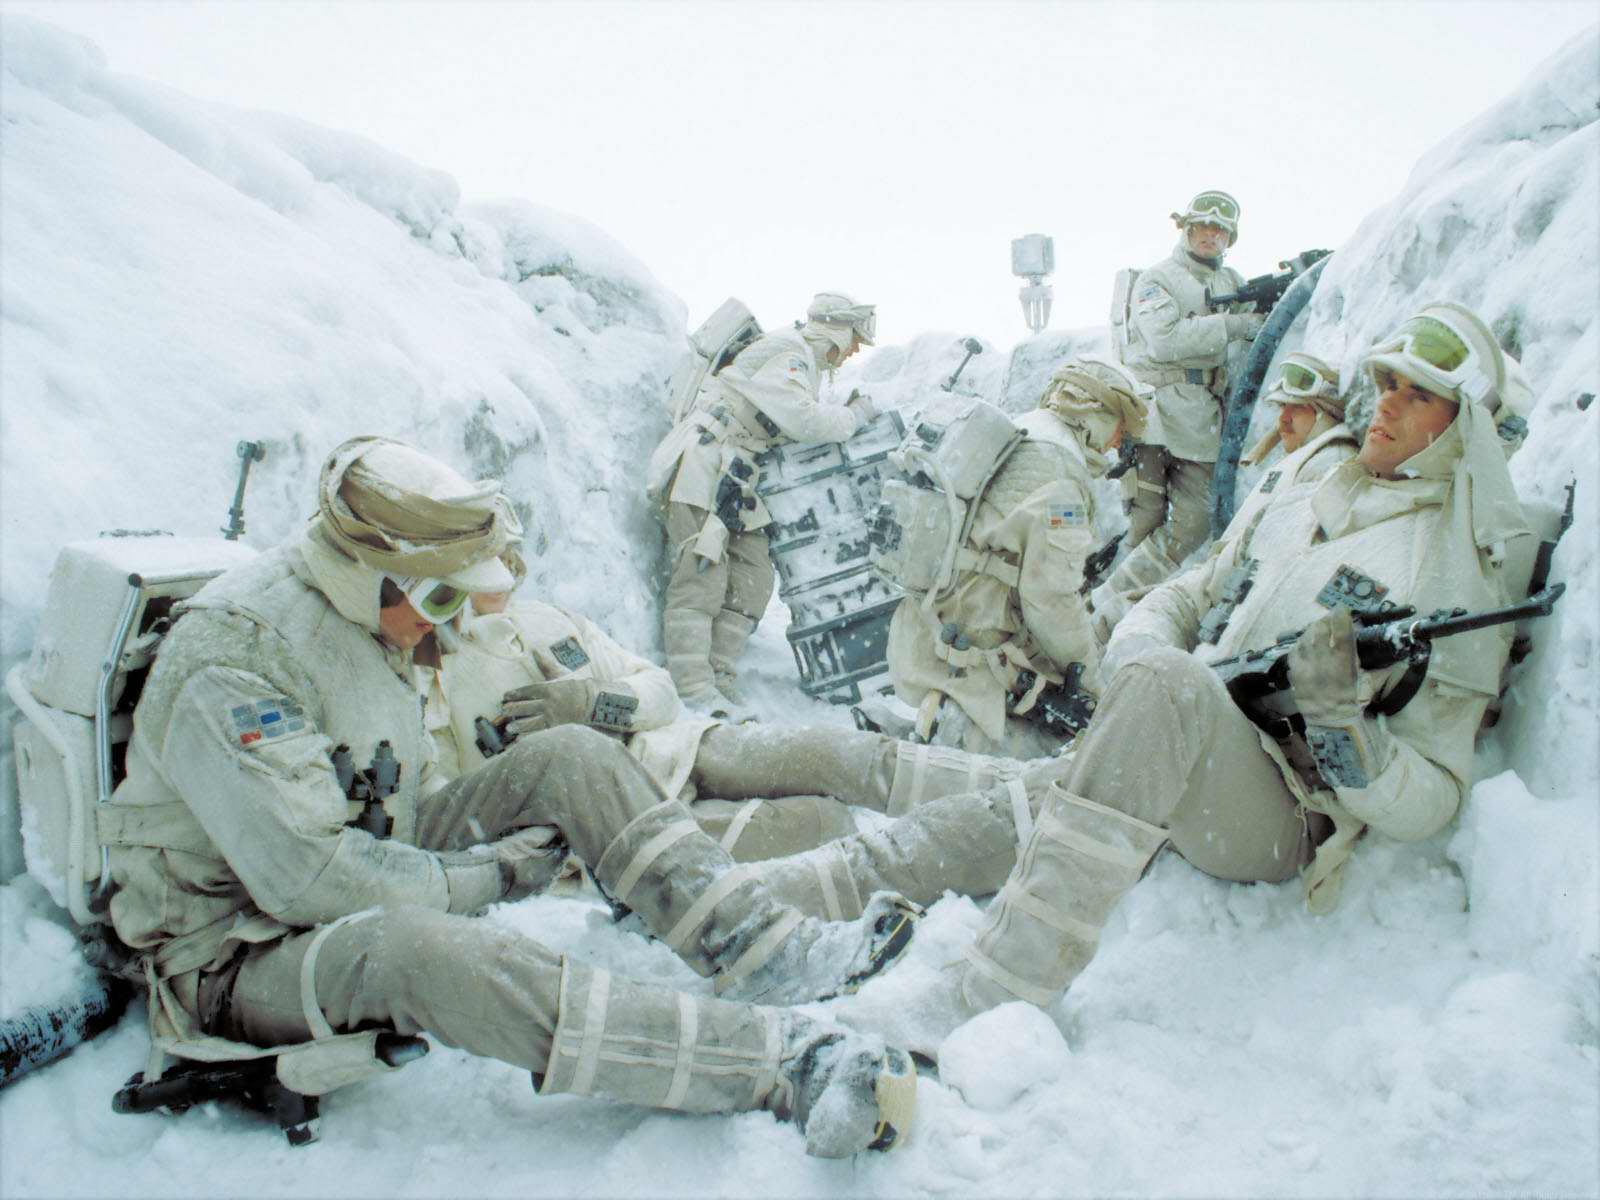 http://vignette1.wikia.nocookie.net/starwars/images/b/b6/Hoth_trenches.jpg/revision/latest?cb=20080425164951